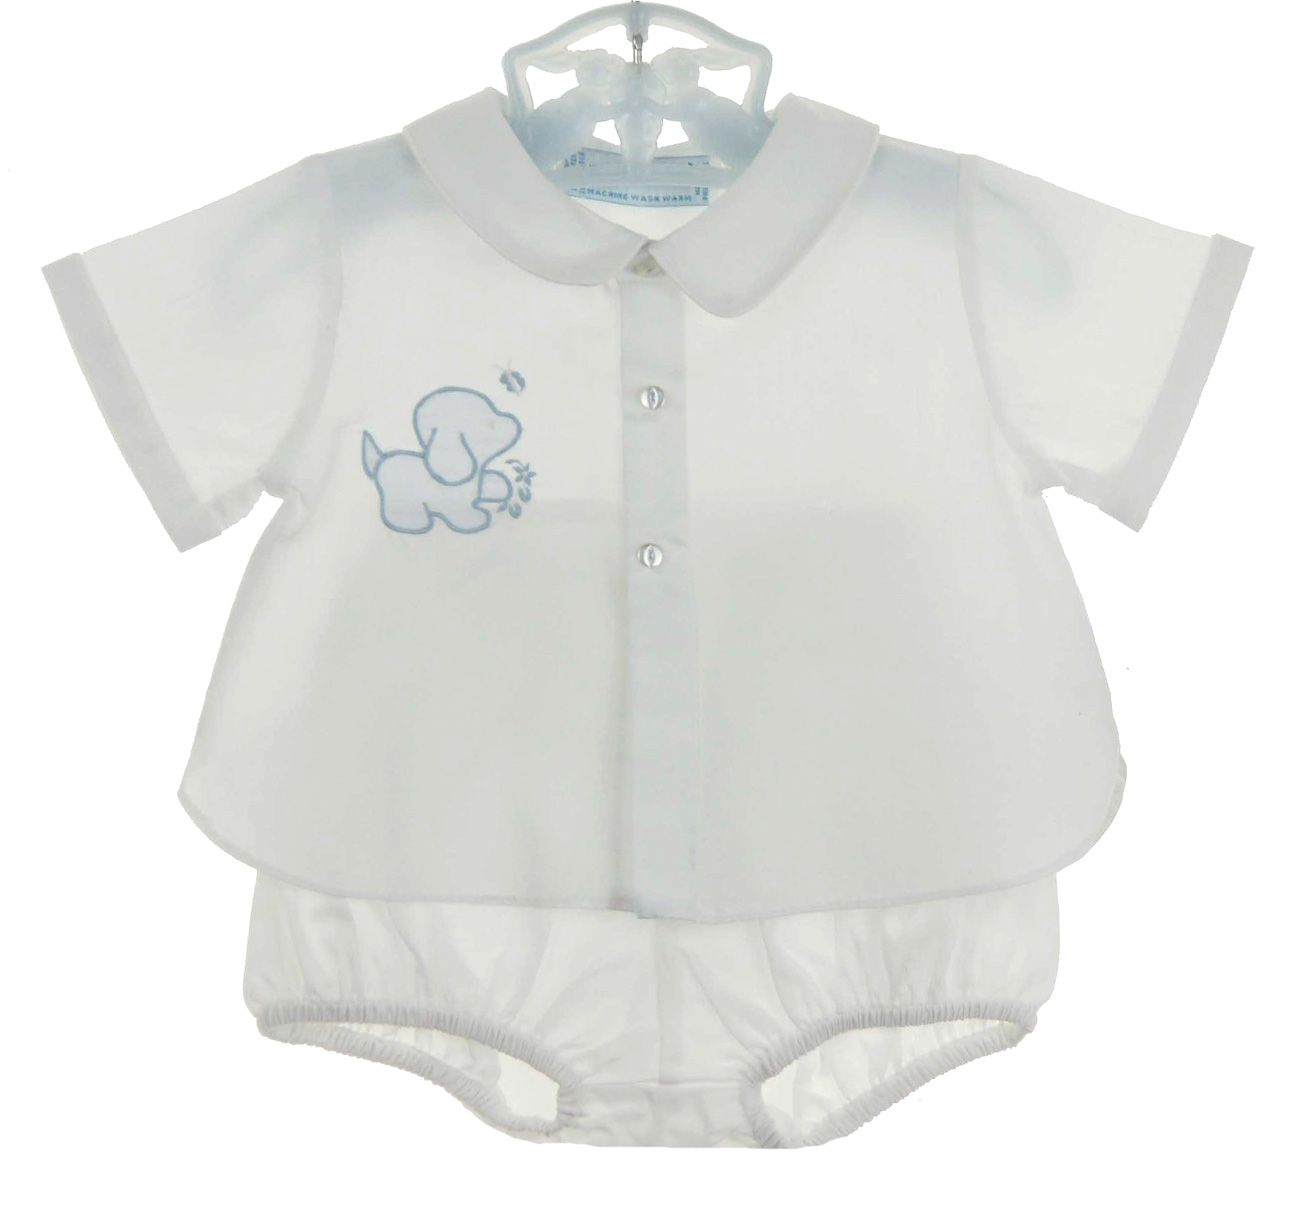 b31d25a5 NEW Hand Embroidered White Diaper Set with Blue Appliqued Puppy $50.00  #DiaperSets #DiaperShirts